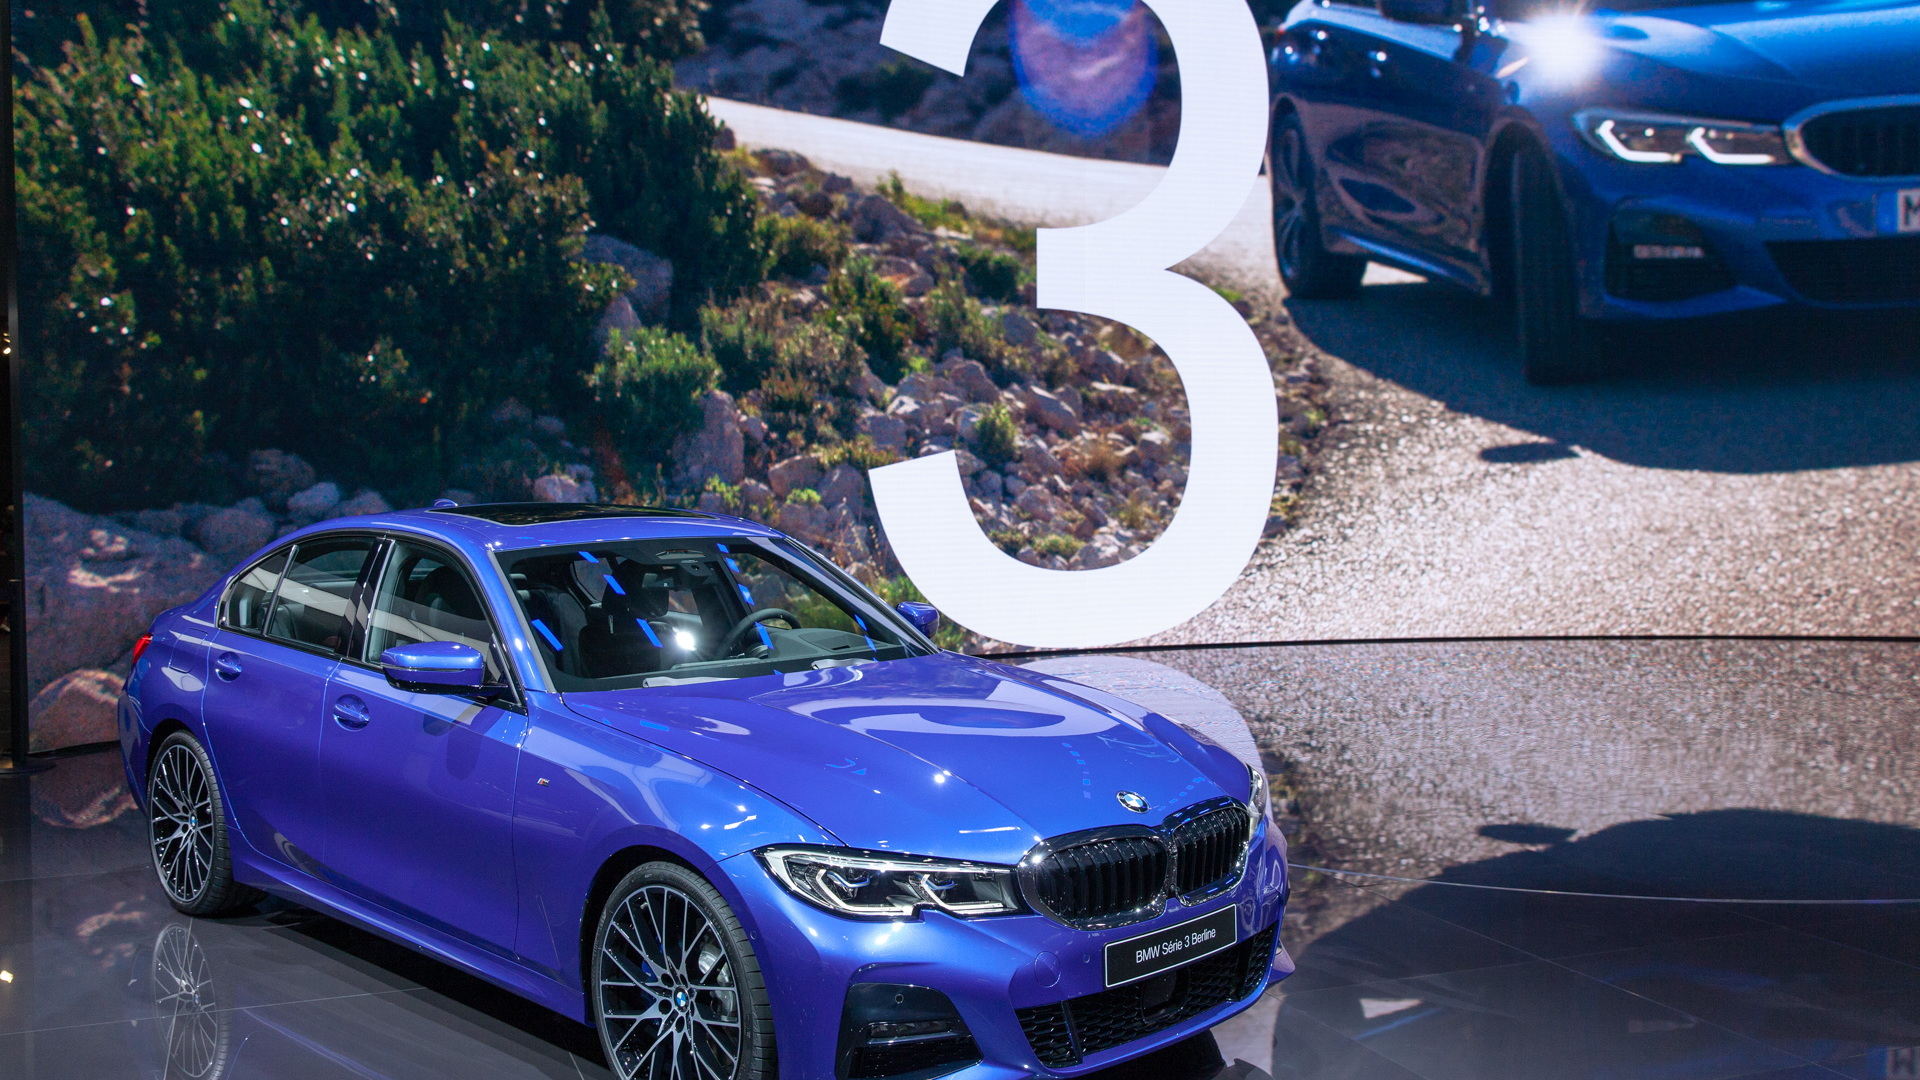 2019 BMW 3-Series Revealed In Paris With Updated Tech